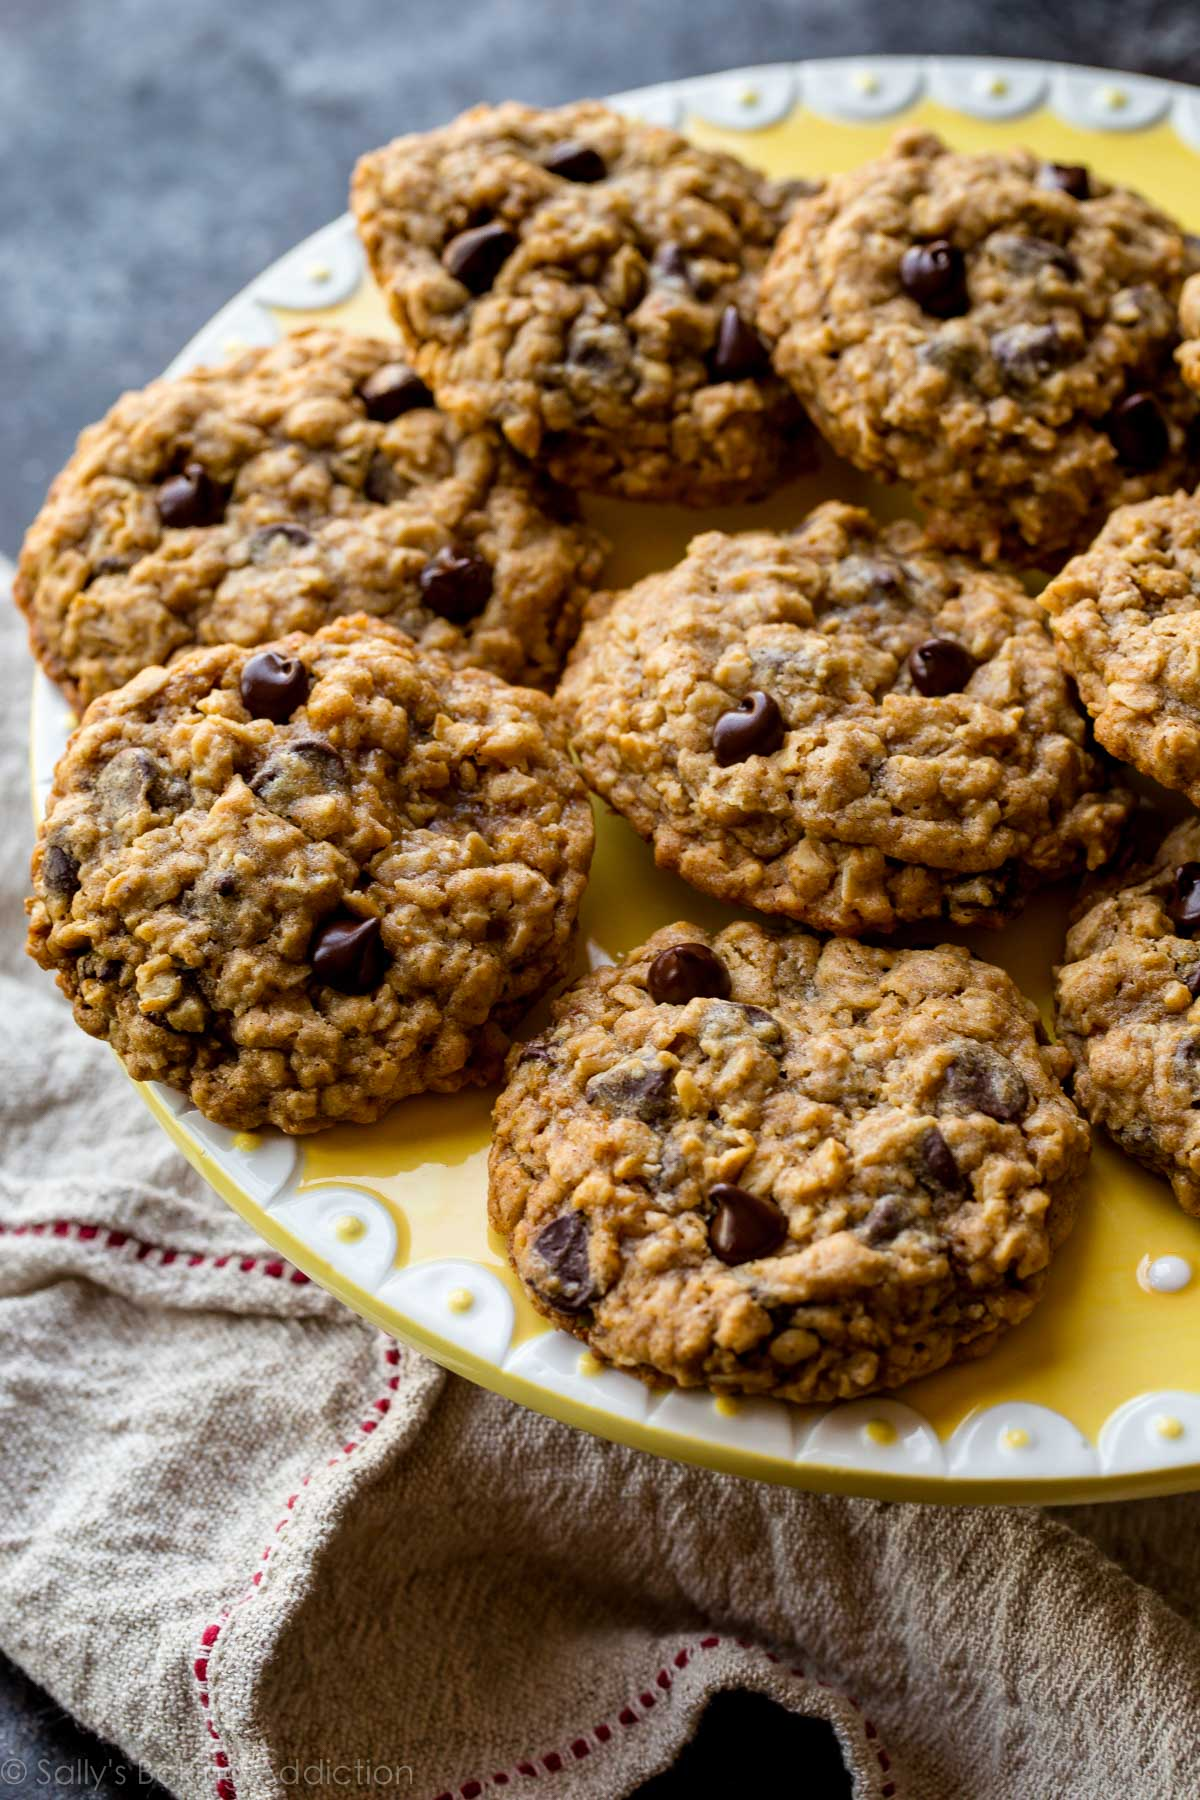 Choc Oat Chip Cookies